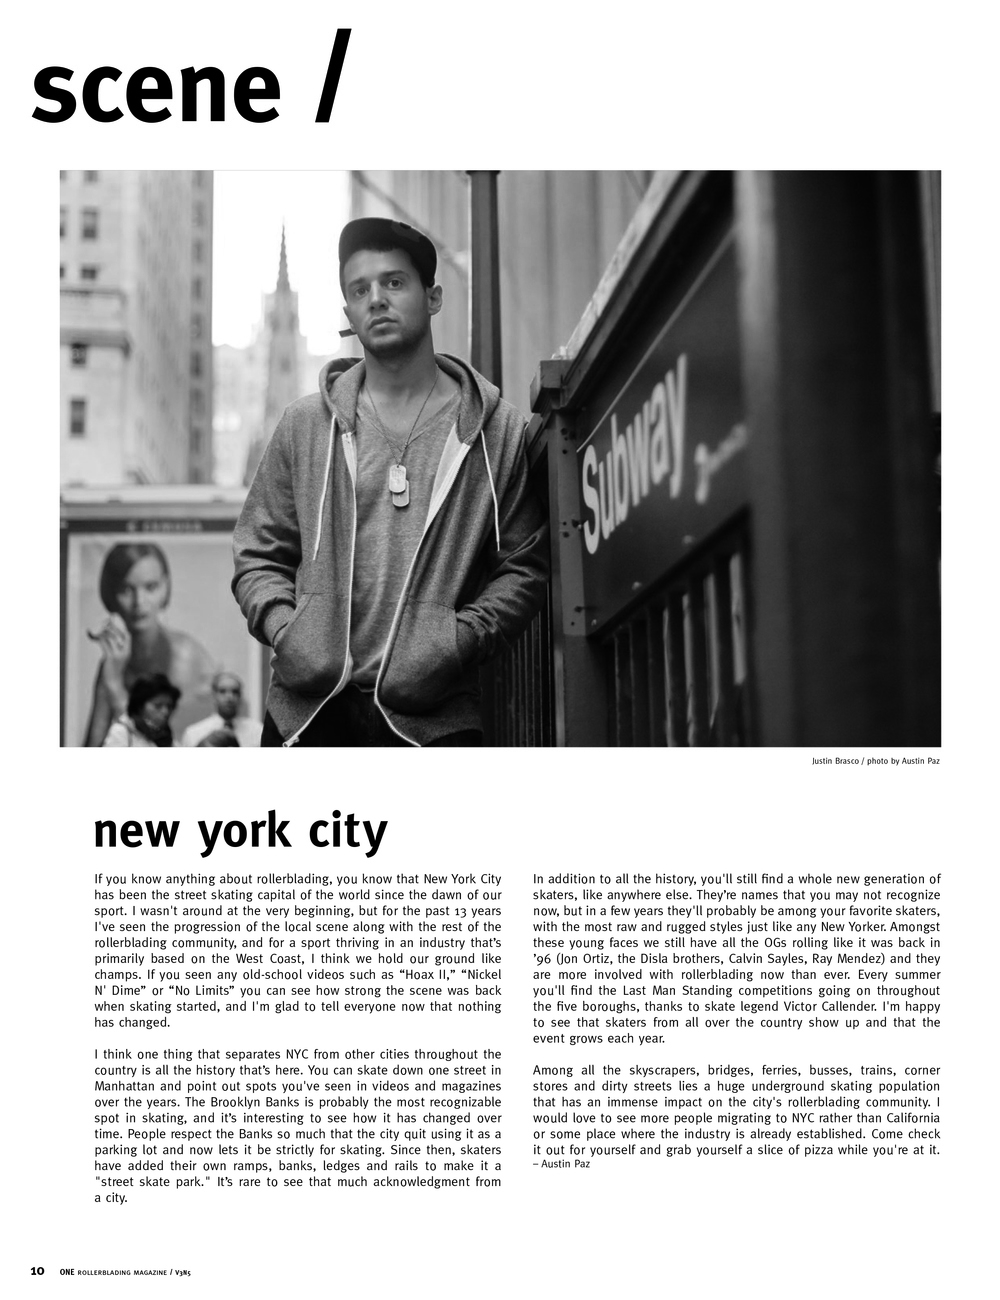 austin paz justin brasco one magazine nyc